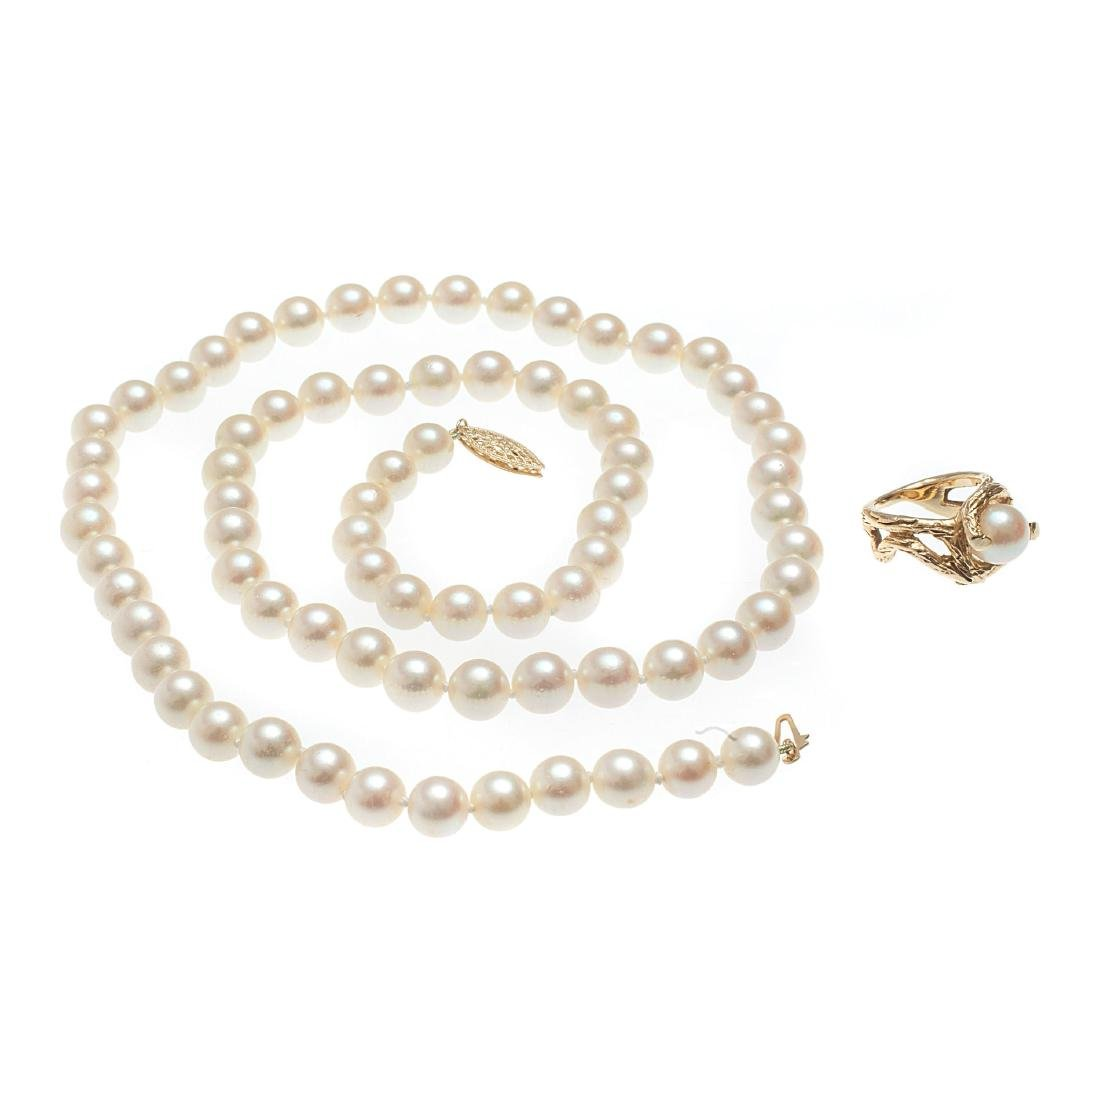 A cultured pearl, 14k yellow gold necklace and ring